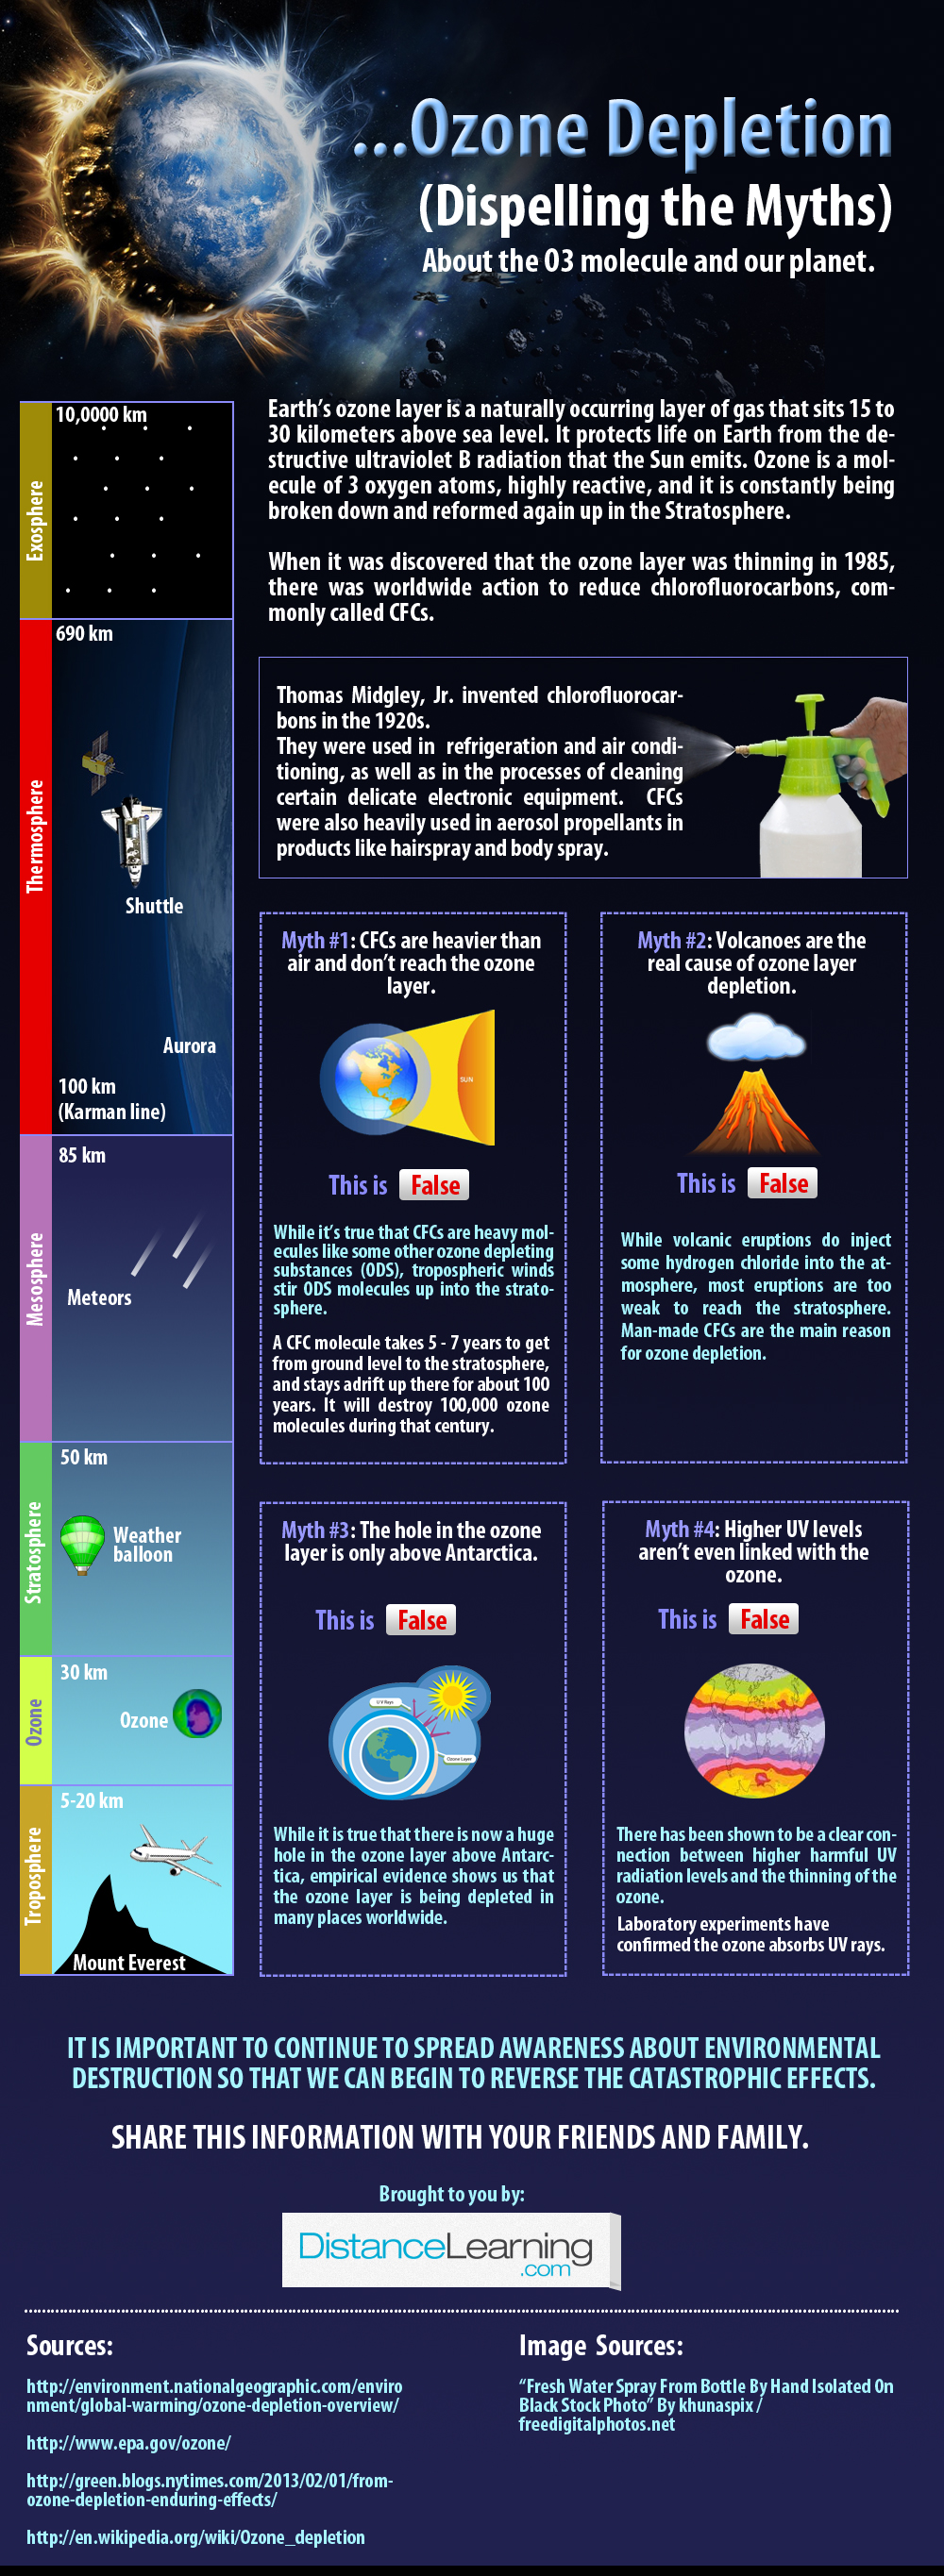 ozone-depletion-dispelling-the-myths_5214f62994569